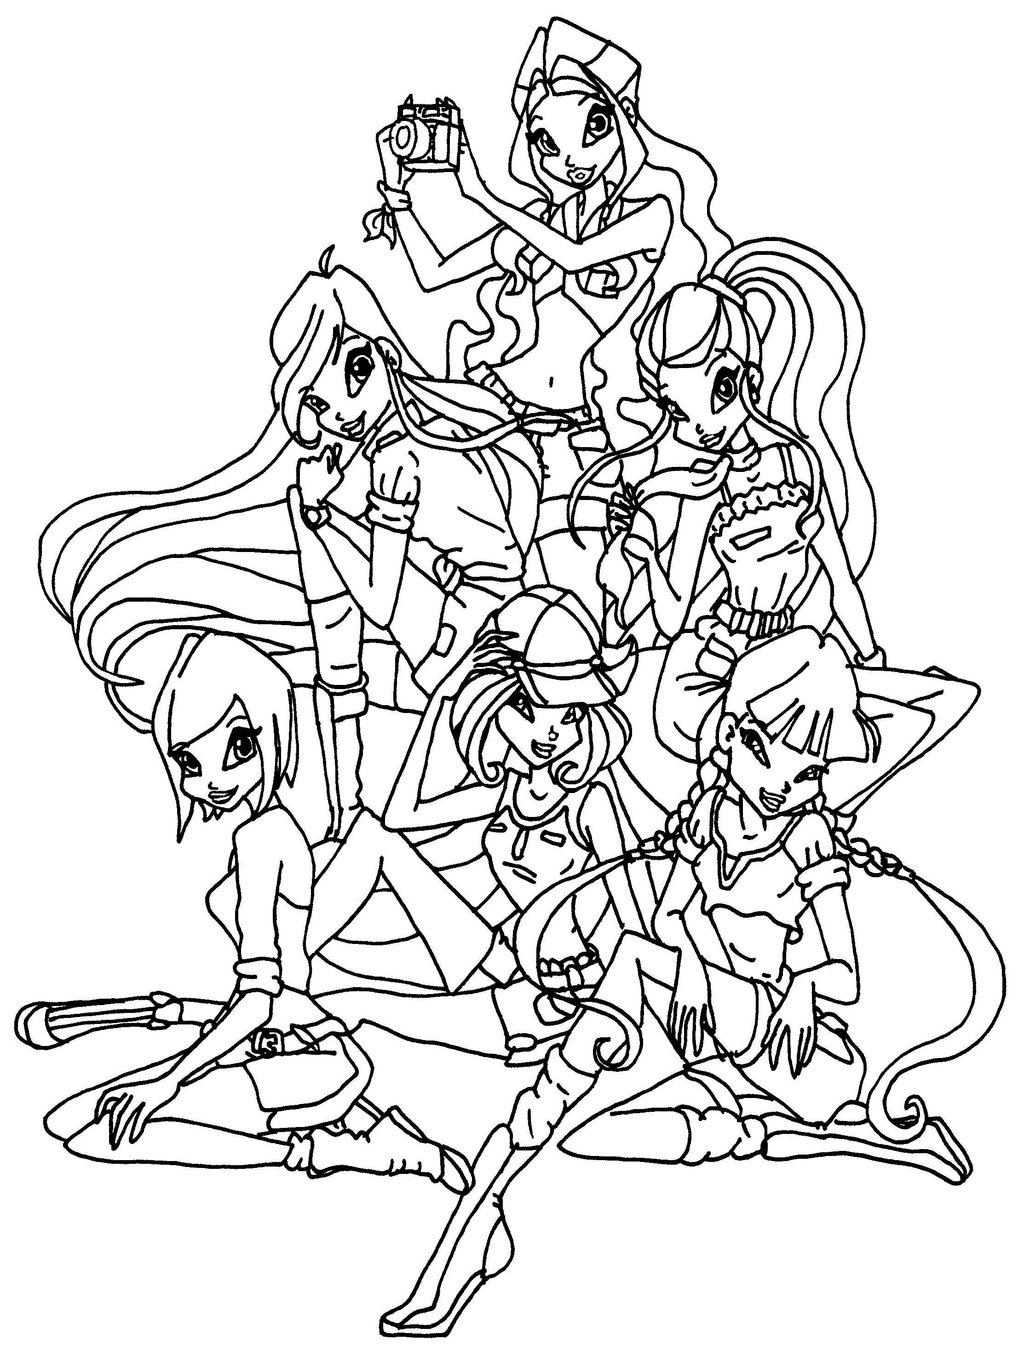 Winx Club Coloring Pages Printable picture, Winx Club Coloring Pages ...